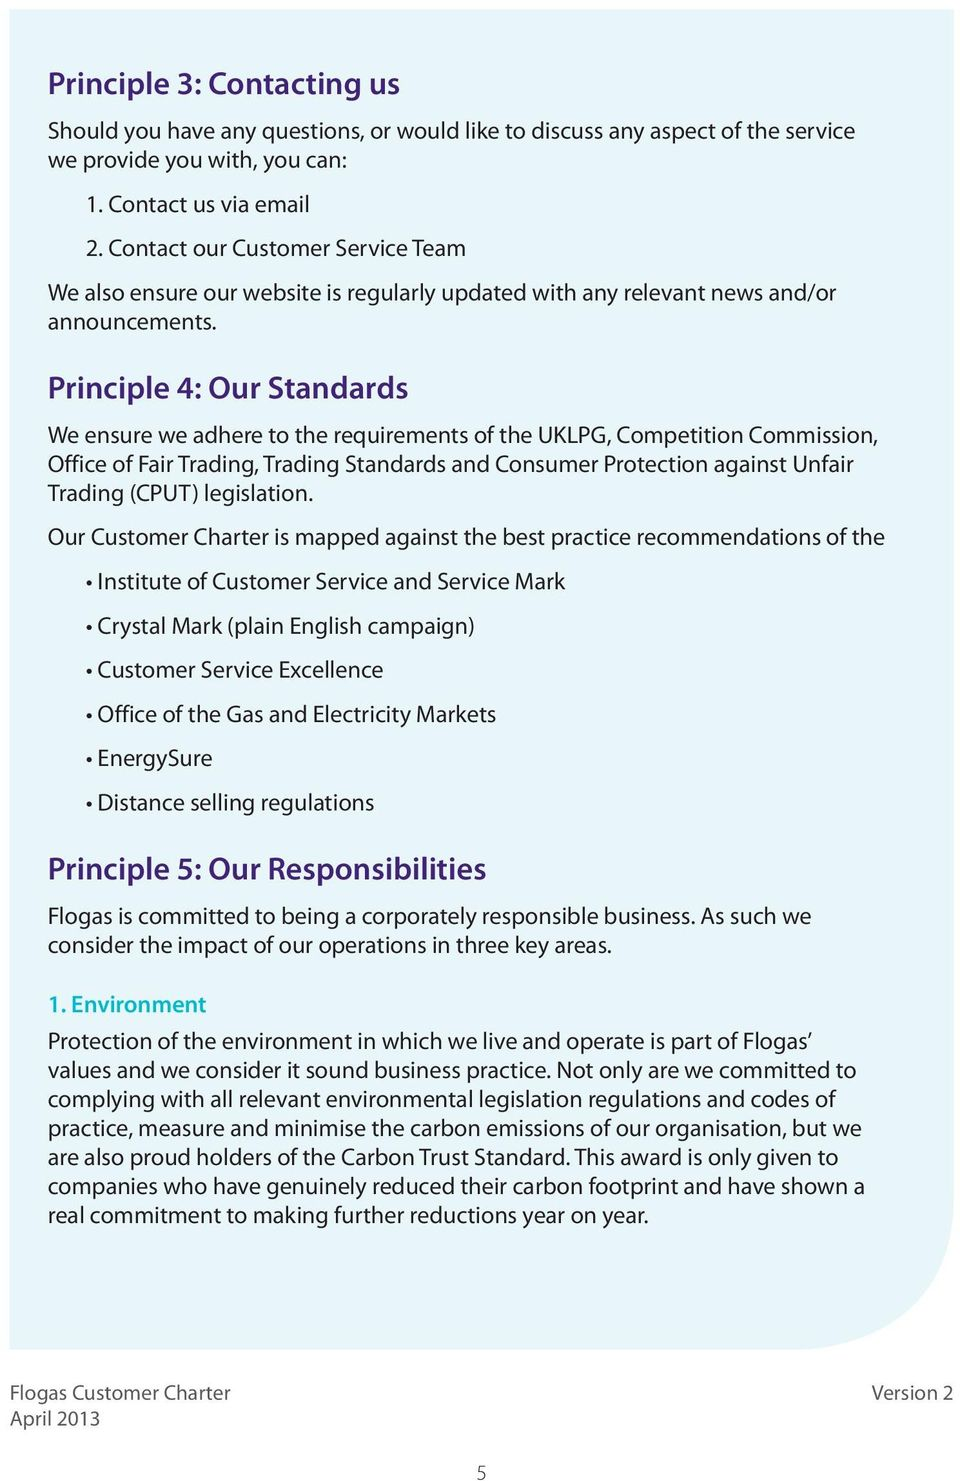 Principle 4: Our Standards We ensure we adhere to the requirements of the UKLPG, Competition Commission, Office of Fair Trading, Trading Standards and Consumer Protection against Unfair Trading